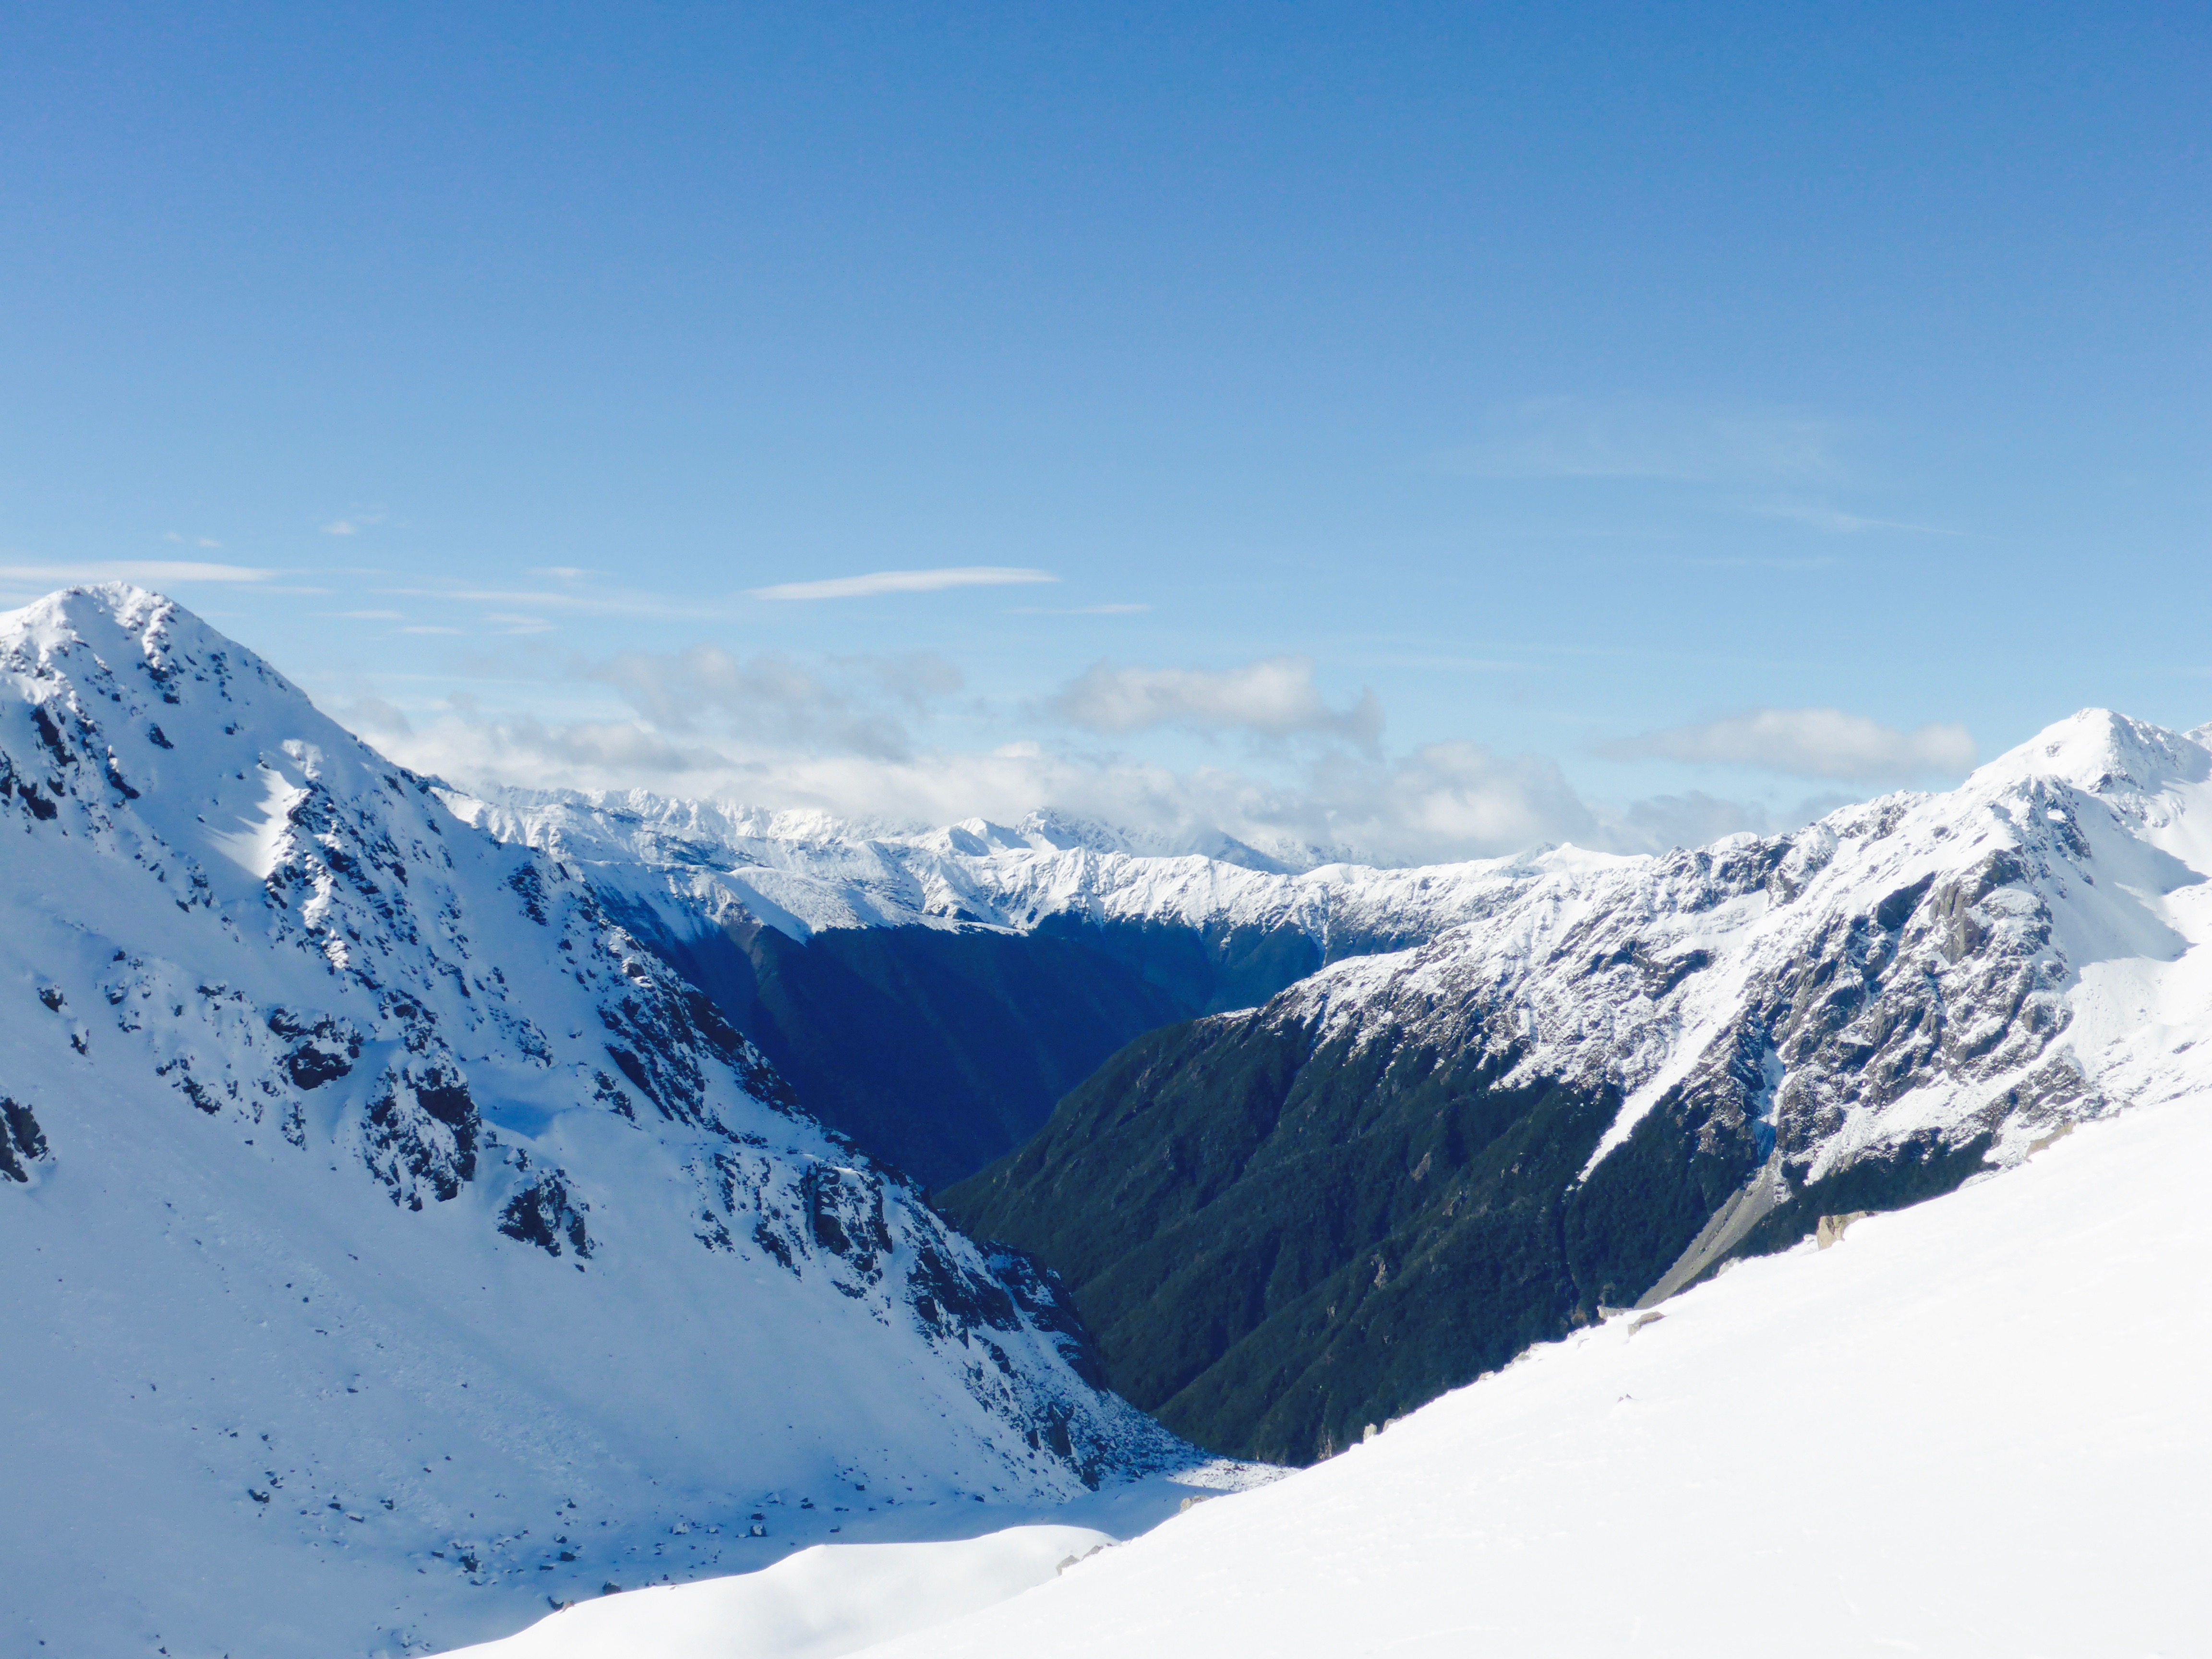 snowy mountains in new zealand